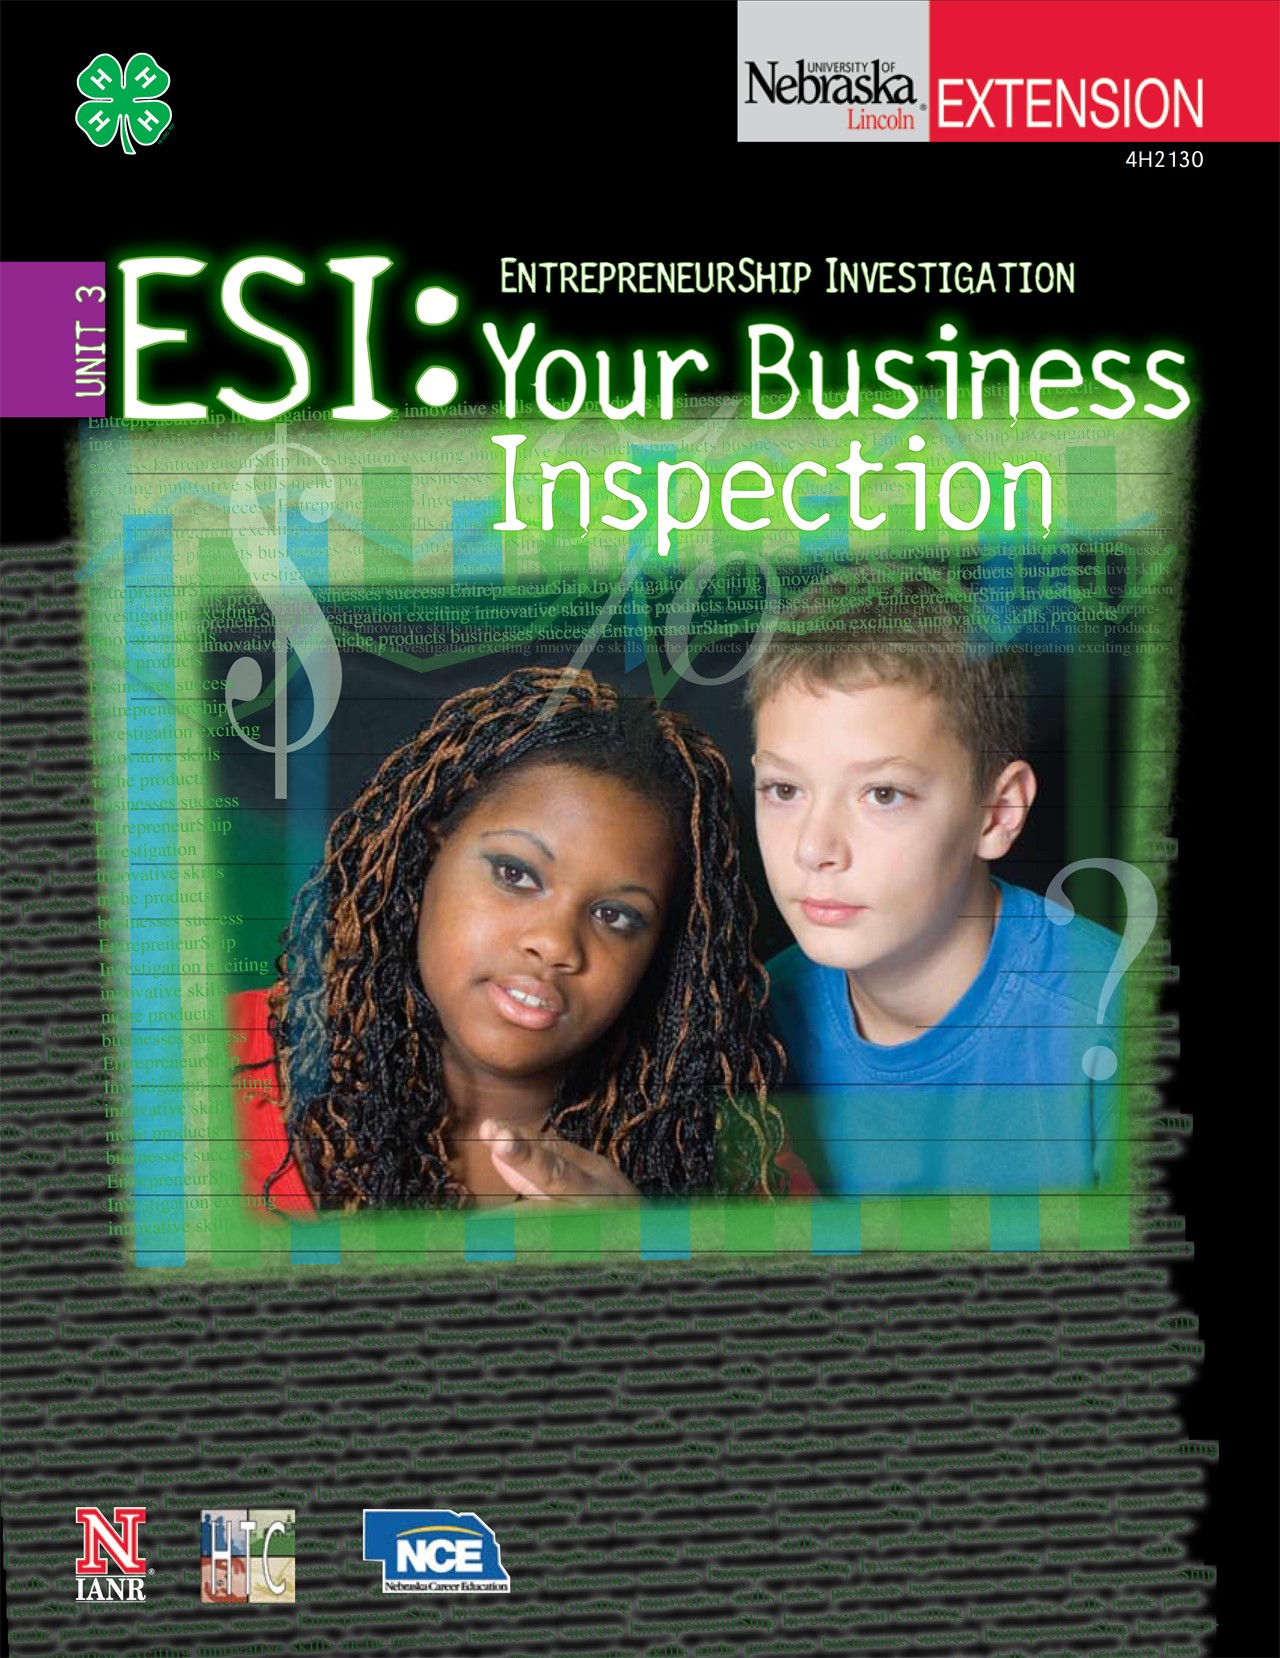 EntrepreneurShip Investigation 3: Your Business Inspection